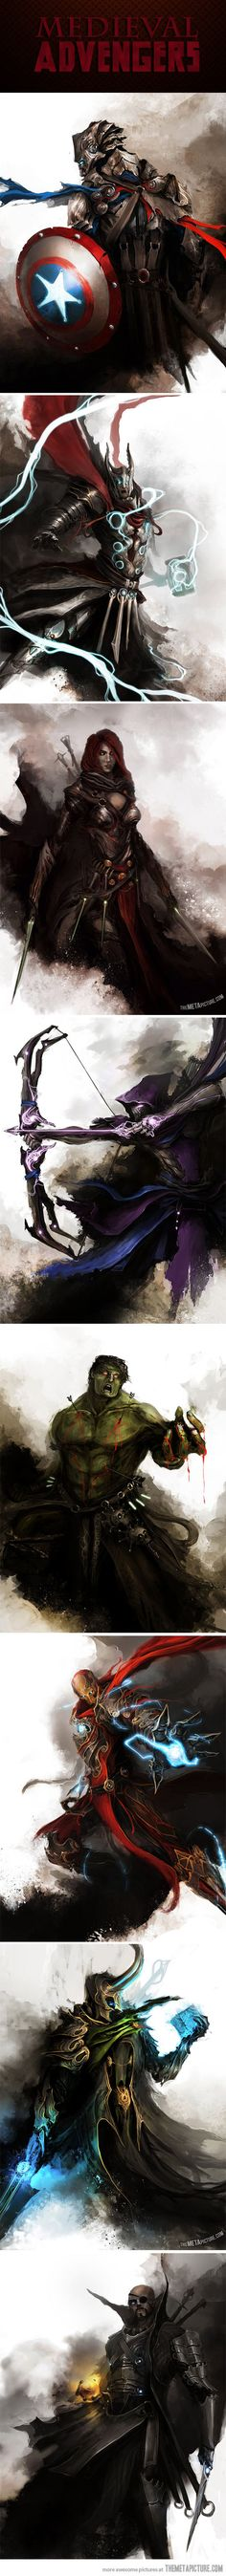 """Amazing Medieval Avengers… ✮✮Feel free to share on Pinterest"""" ♥ღ www.unocollectibles.com"""